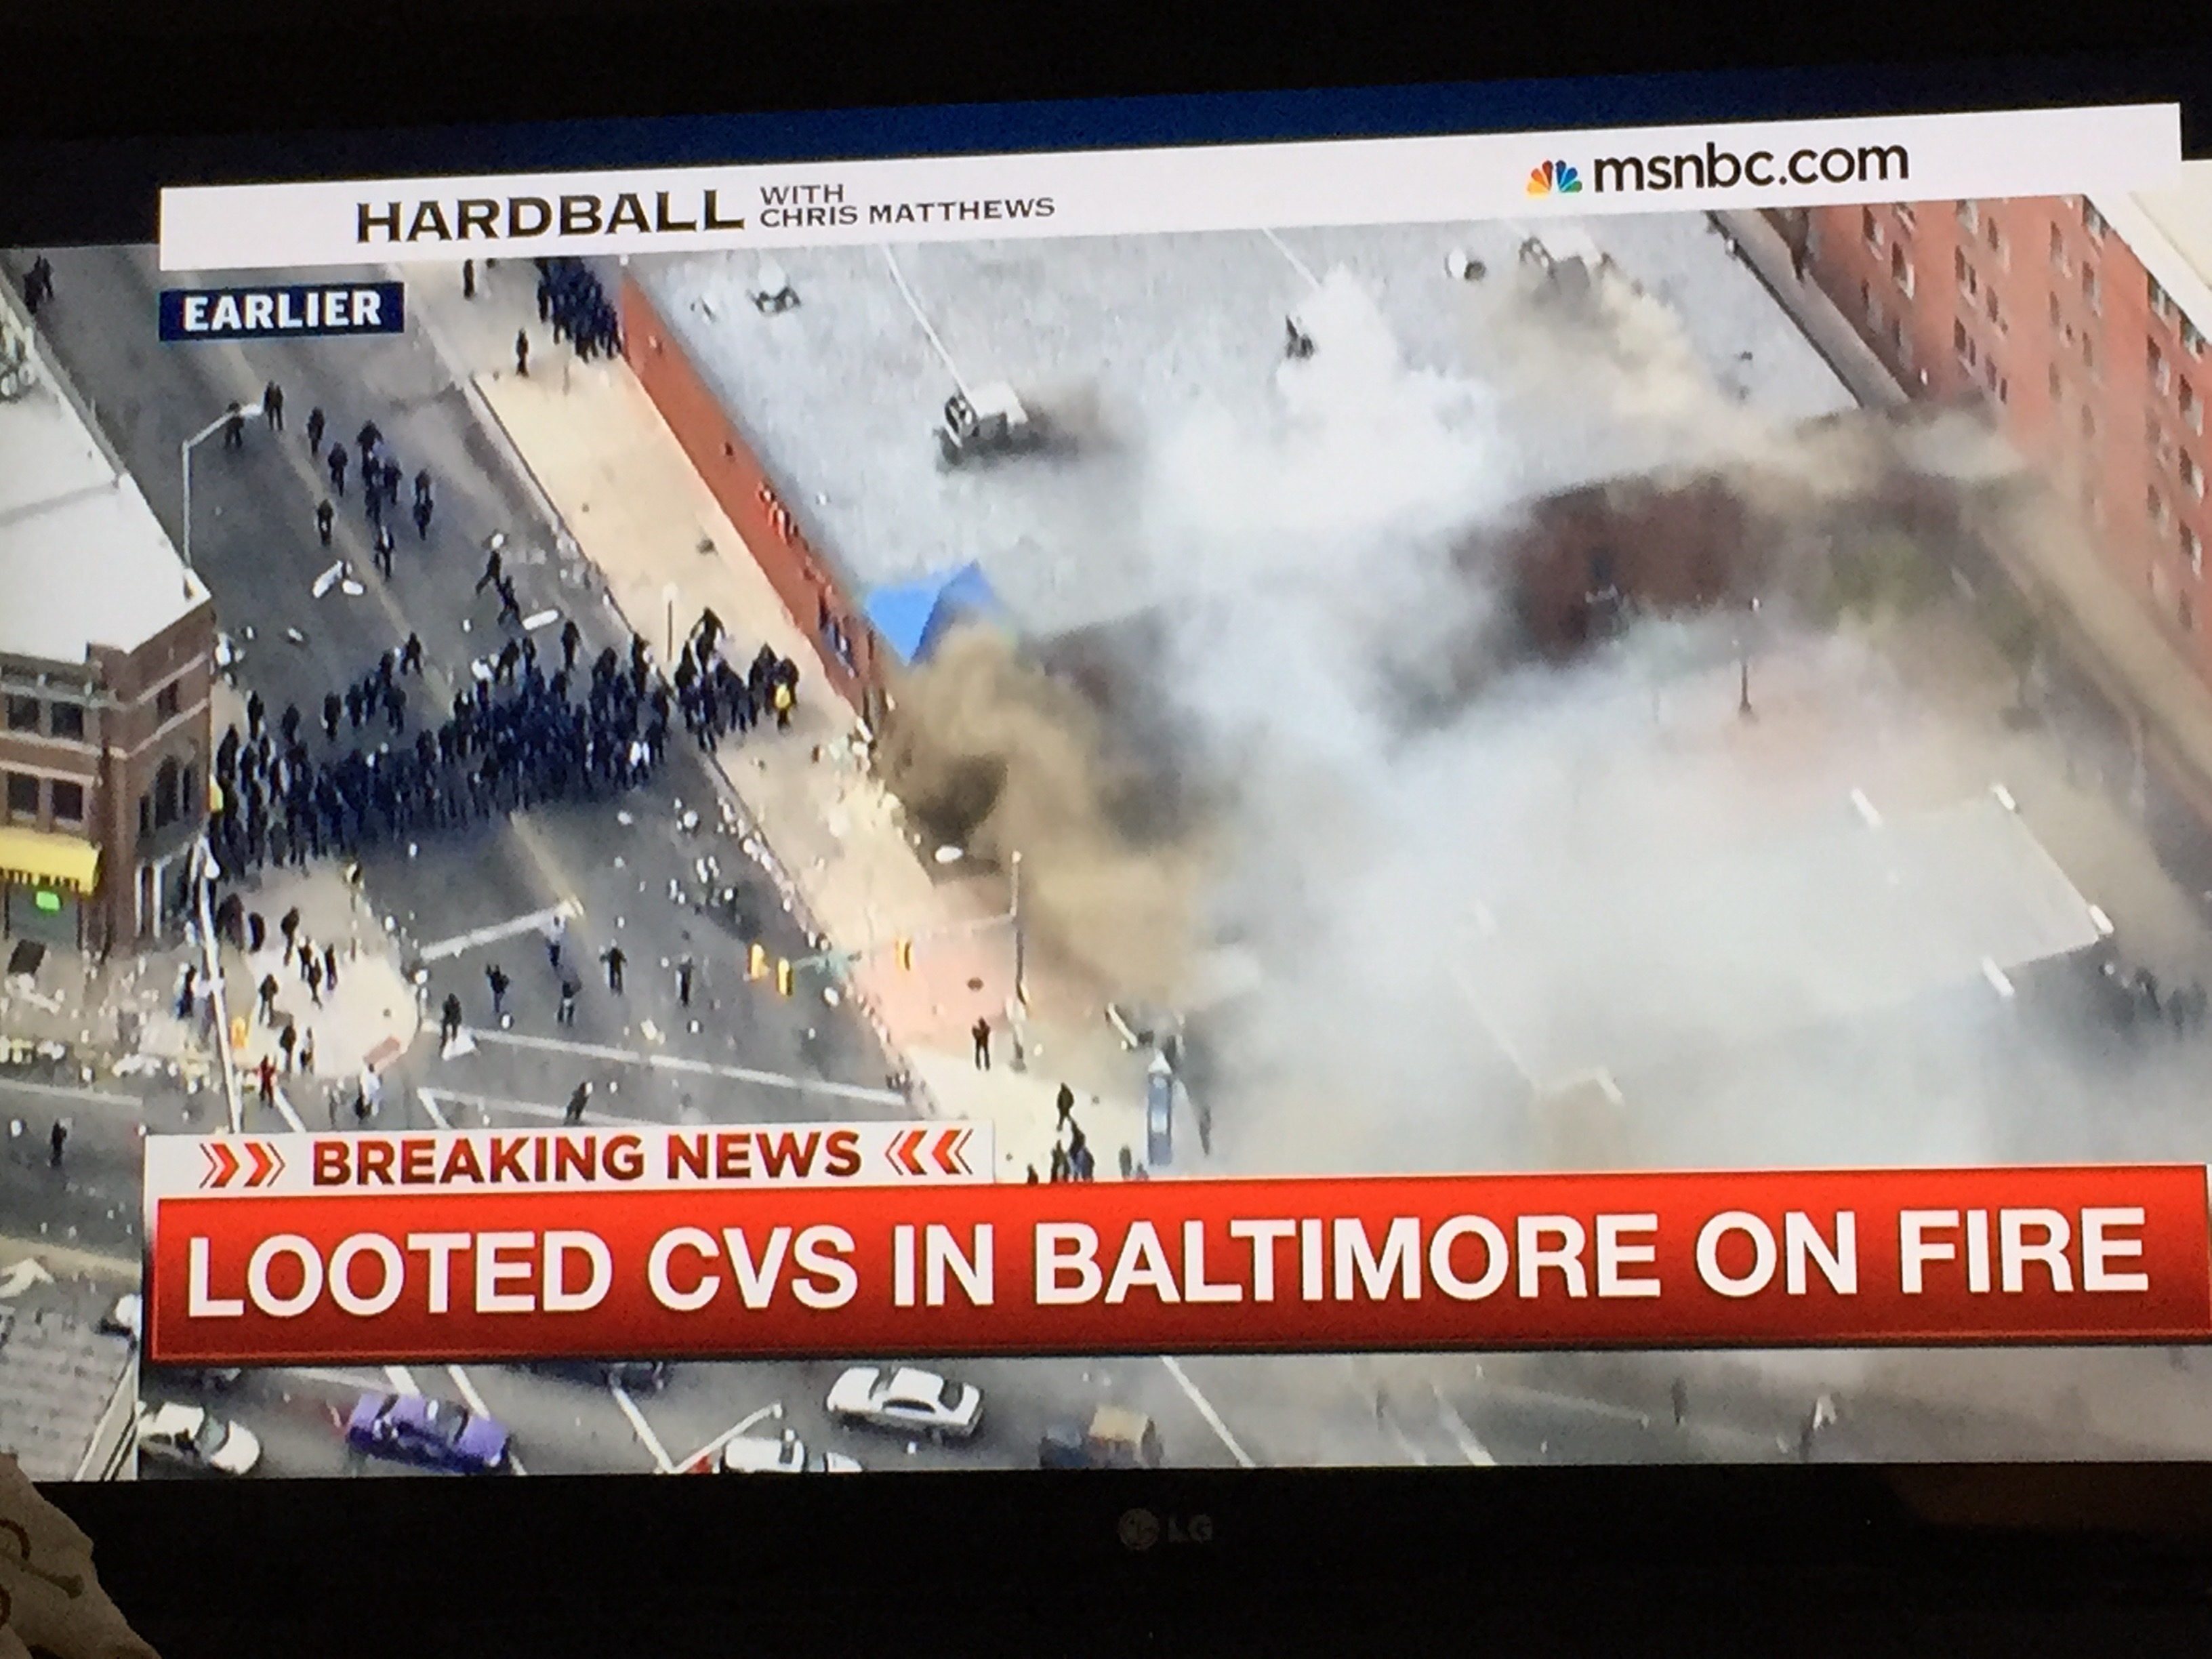 Cable News Focuses on Baltimore CVS